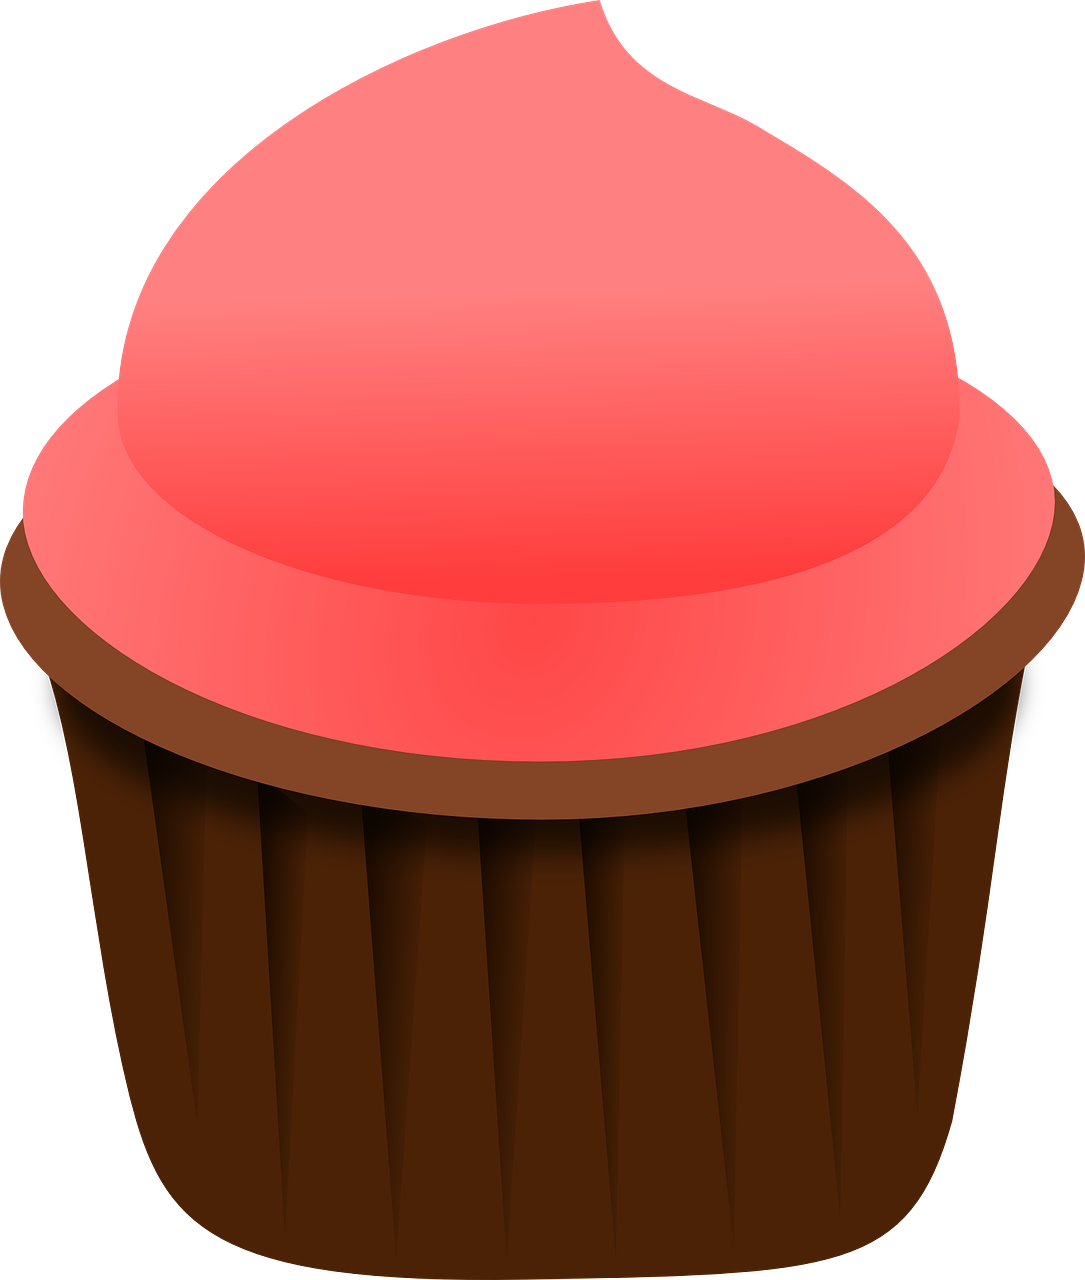 cupcake,pink,food,sweet,dessert,cake,baked,frosting,party,icing,birthday,frosted,cream,cup,buttercream,iced,baking,decorated,celebration,snack,cup-cake,sugar,eating,delicious,unhealthy,fattening,tasty,treat,chocolate,eat,homemade,bake,brown,bakery,free vector graphics,free pictures, free photos, free images, royalty free, free illustrations, public domain